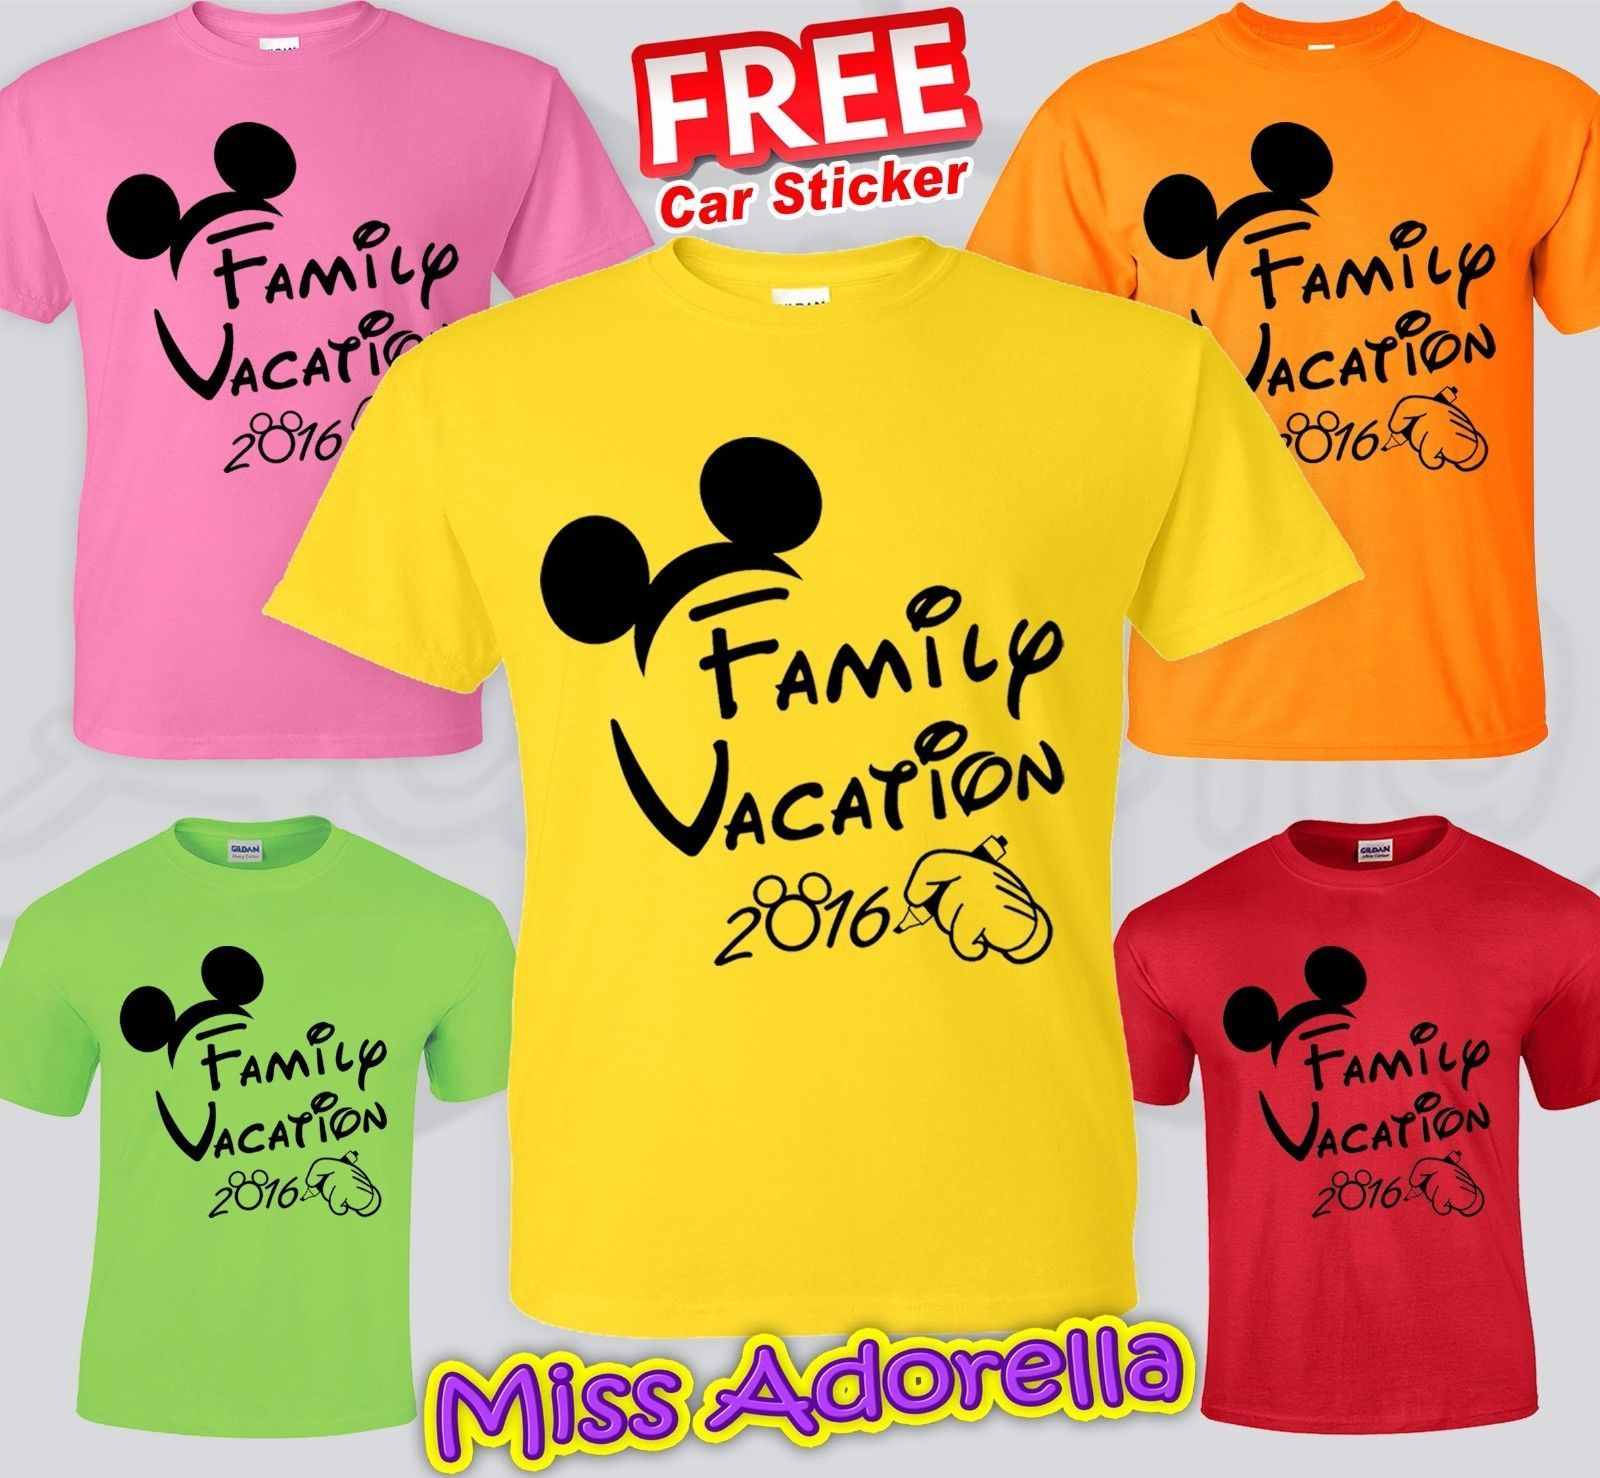 Disney family vacation shirts image by Linda Vernet on